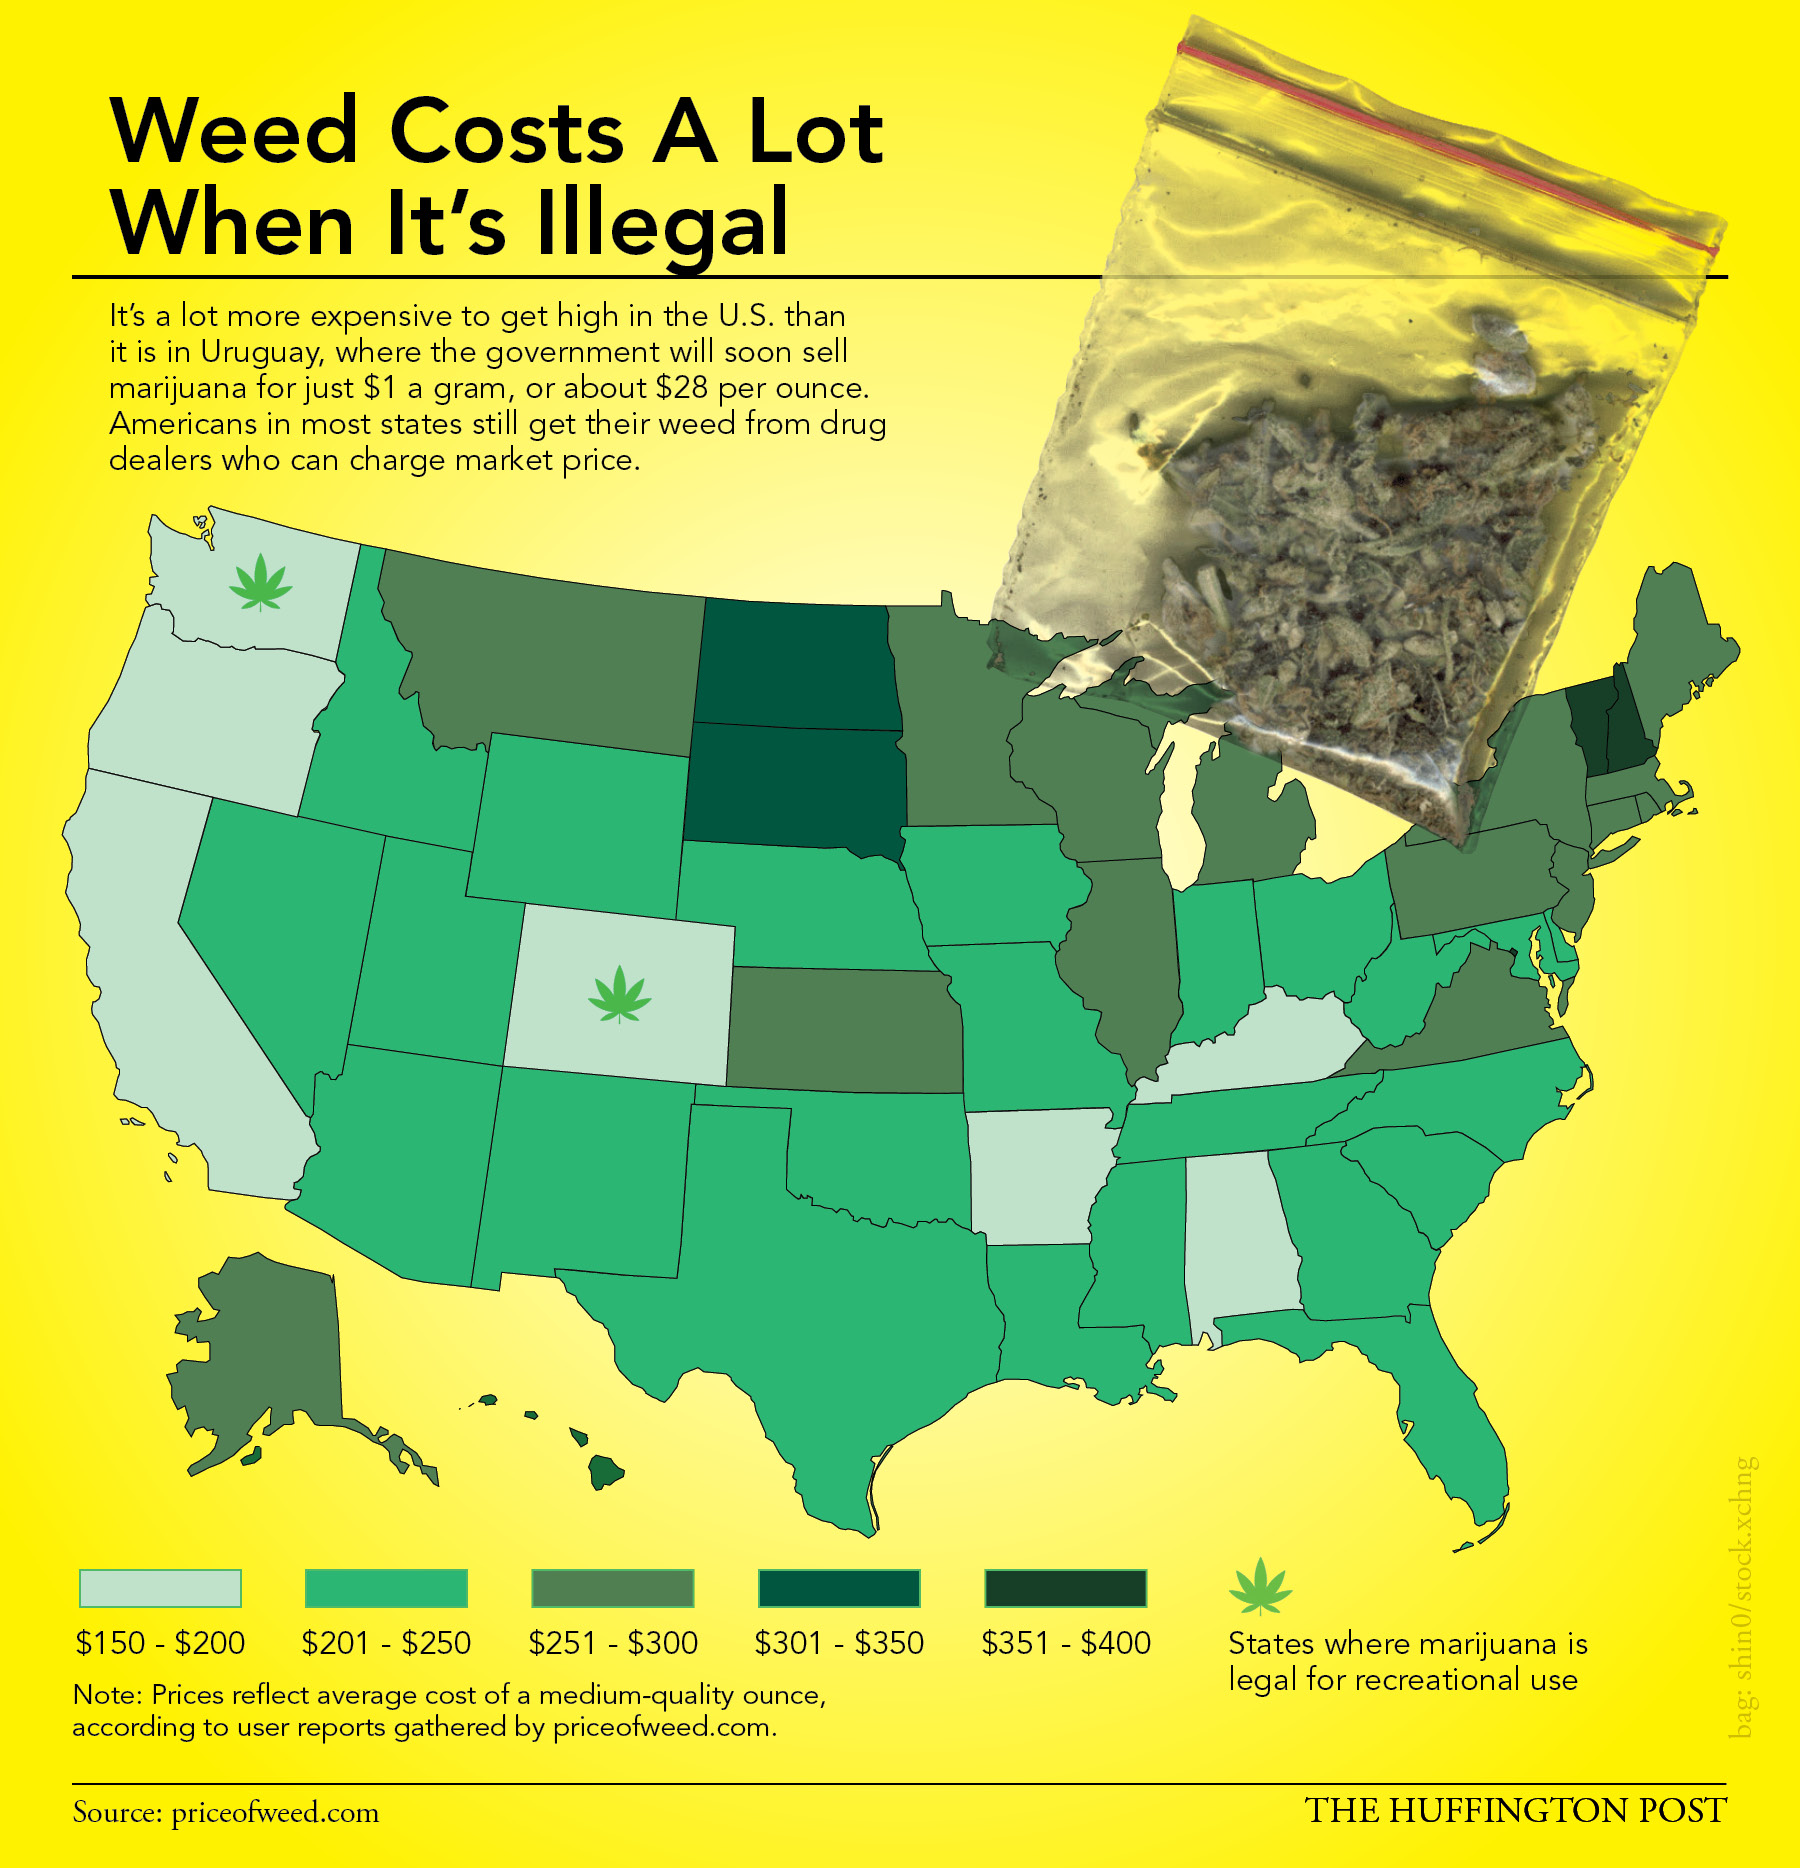 Heres Where To Find The Cheapest Weed In The US HuffPost - Us map on weed laws